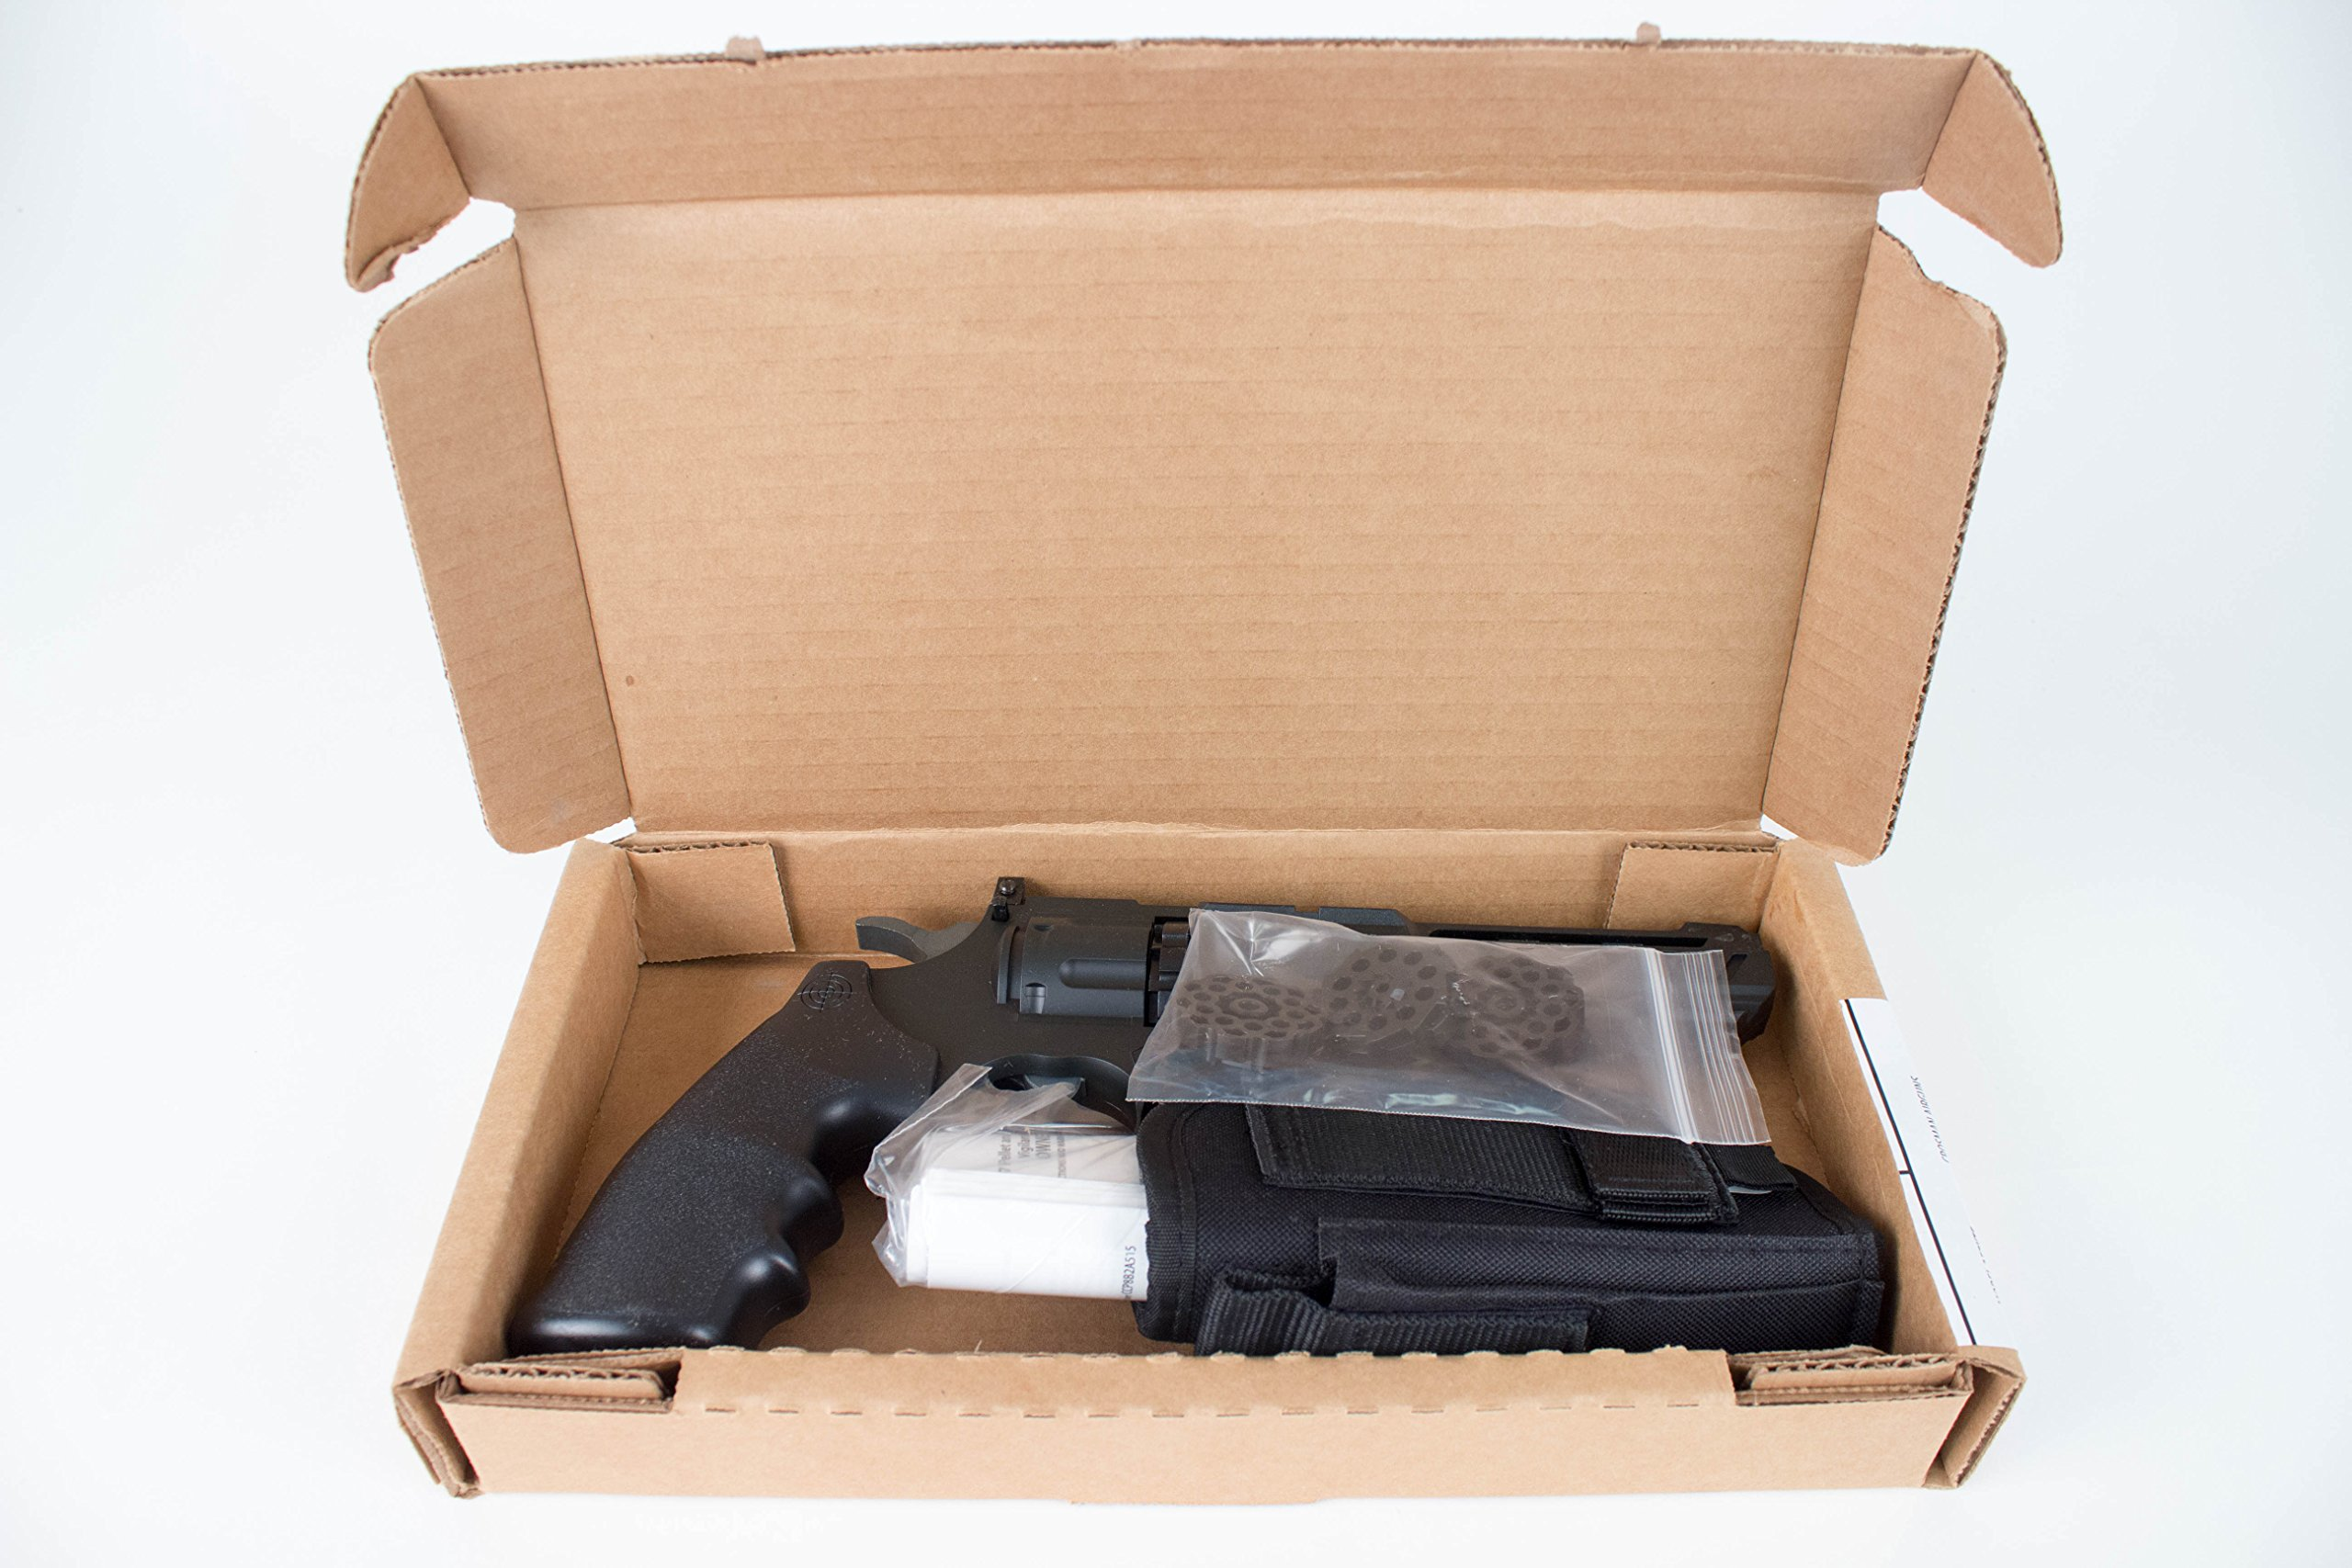 Crosman Vigilante 357 Co2 Air Pistol Kit with Holster and 3-Pack of Magazines by Crosman